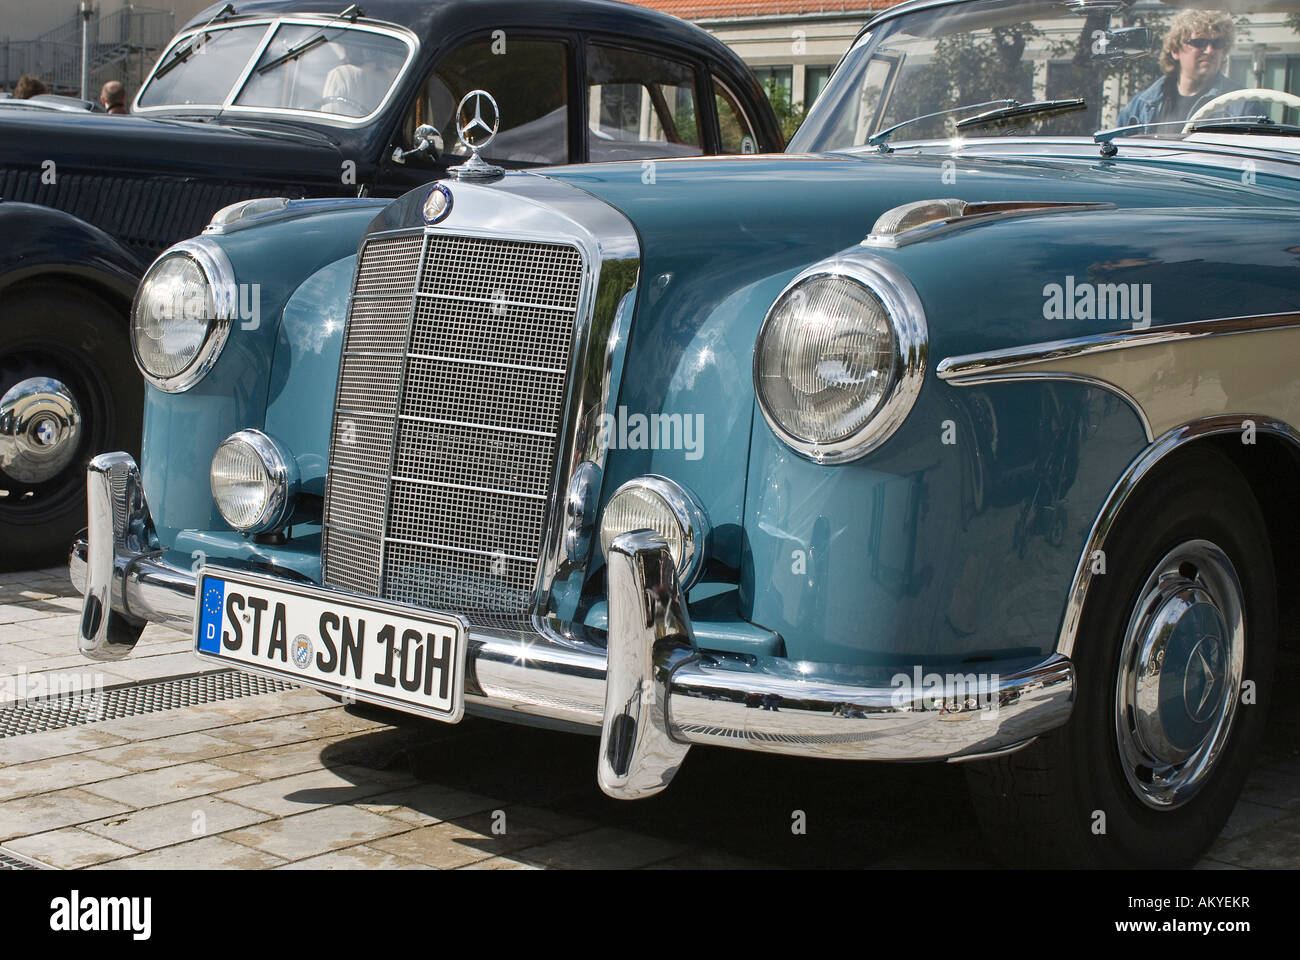 Number Plate And Headlights Stock Photos & Number Plate And ...